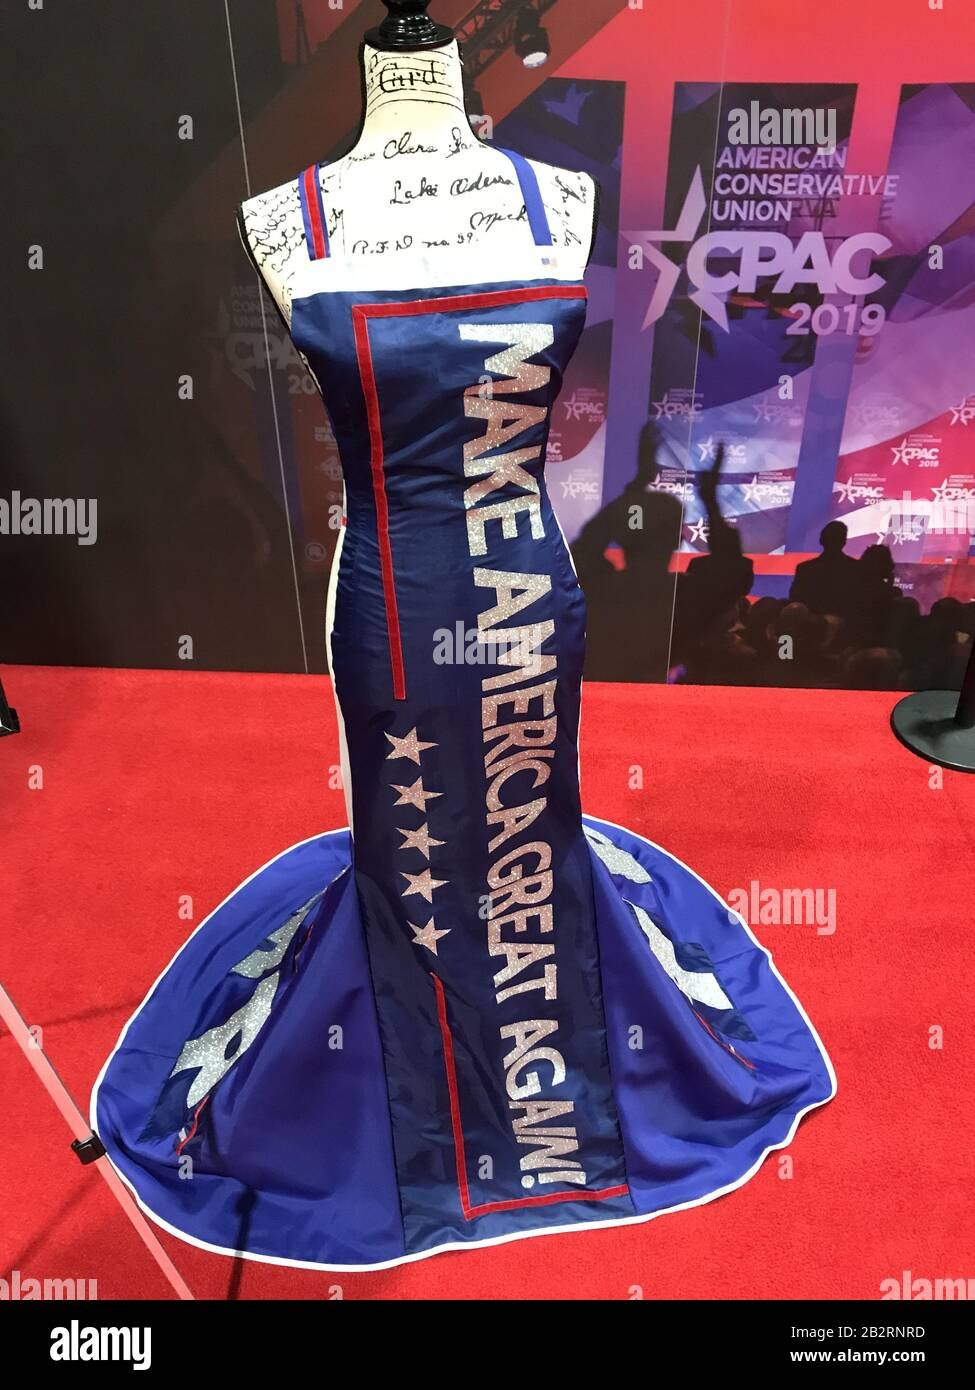 Oxon Hill, Md, USA. 28th Feb, 2020. February 28, 2020, Oxon Hill, Md, USA: Merchandise and political memorabilia is available at the Conservative Political Action Conference (CPAC) in National Harbor, Maryland, U.S., on Friday, Feb. 28, 2020. President Trump will address this years CPAC after dealing with the coronavirus and how the U.S. plans to stop it from spreading. Credit: Alex Wroblewski /CNP.(RESTRICTION: NO New York or New Jersey Newspapers or newspapers within a 75 mile radius of New York City) Credit: Matthias Oesterle/ZUMA Wire/Alamy Live News Stock Photo